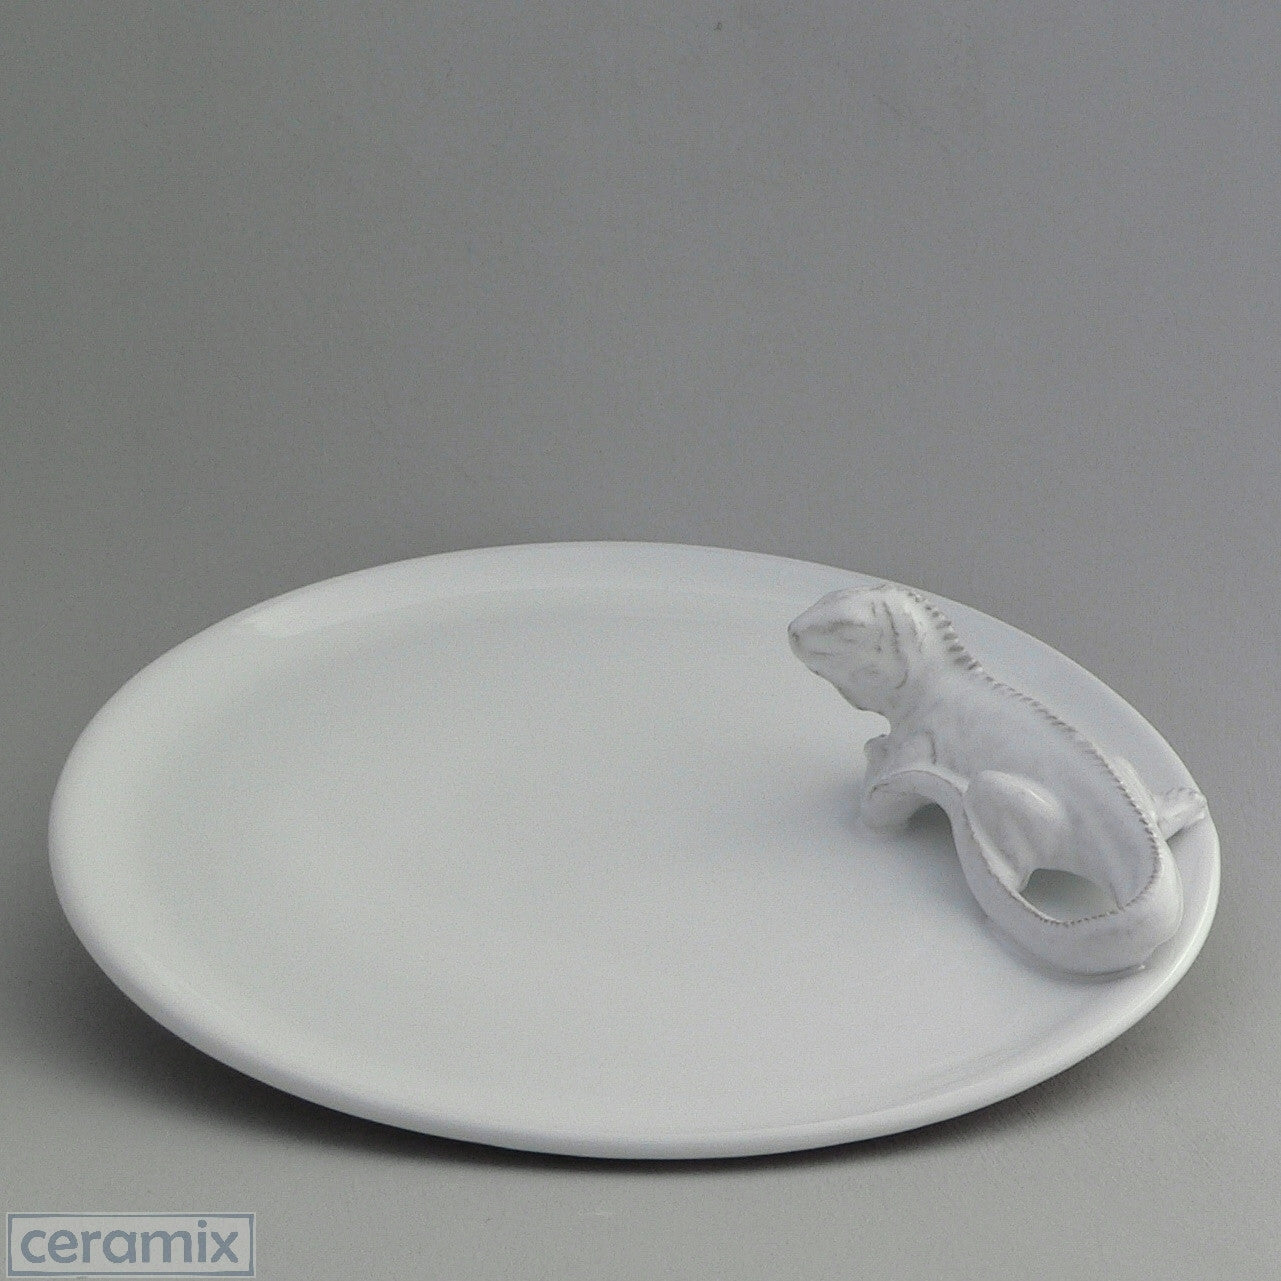 White Ceramic Iguana Cheese Board in Terracotta Clay Glazed White by Ceramix